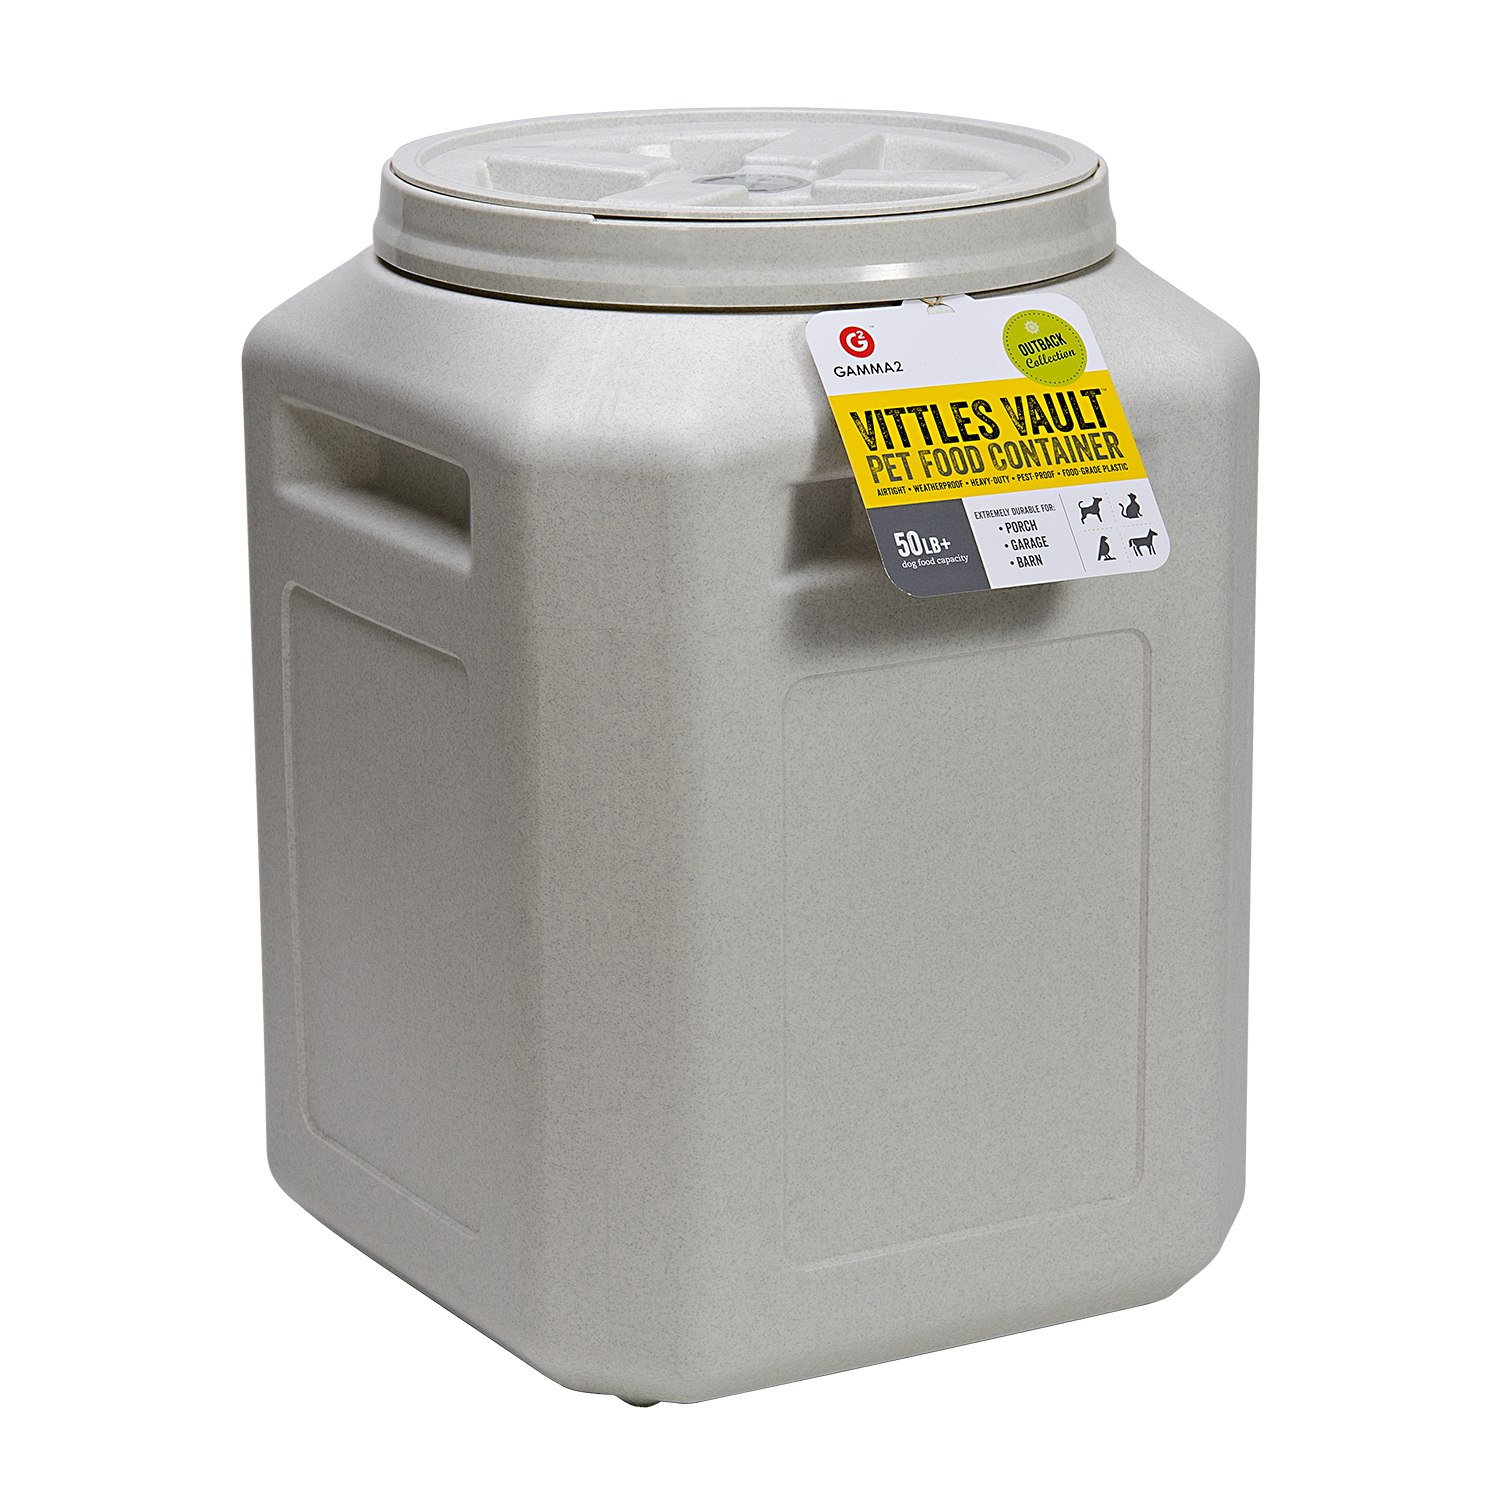 click here to shop Vittles Vault Outback Bucket Pet Food Container